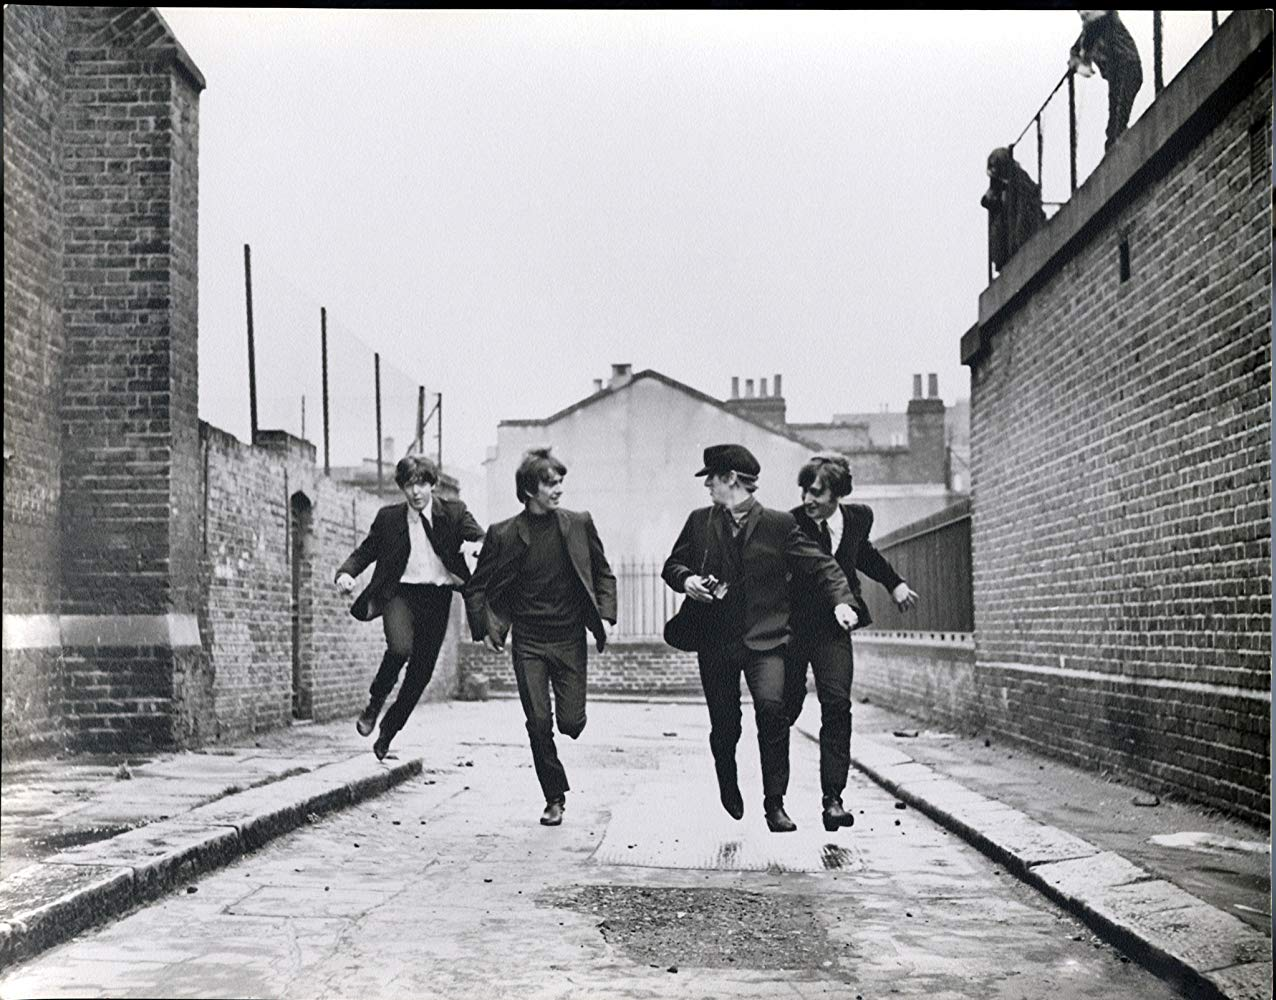 18. A Hard Day's Night (1964)